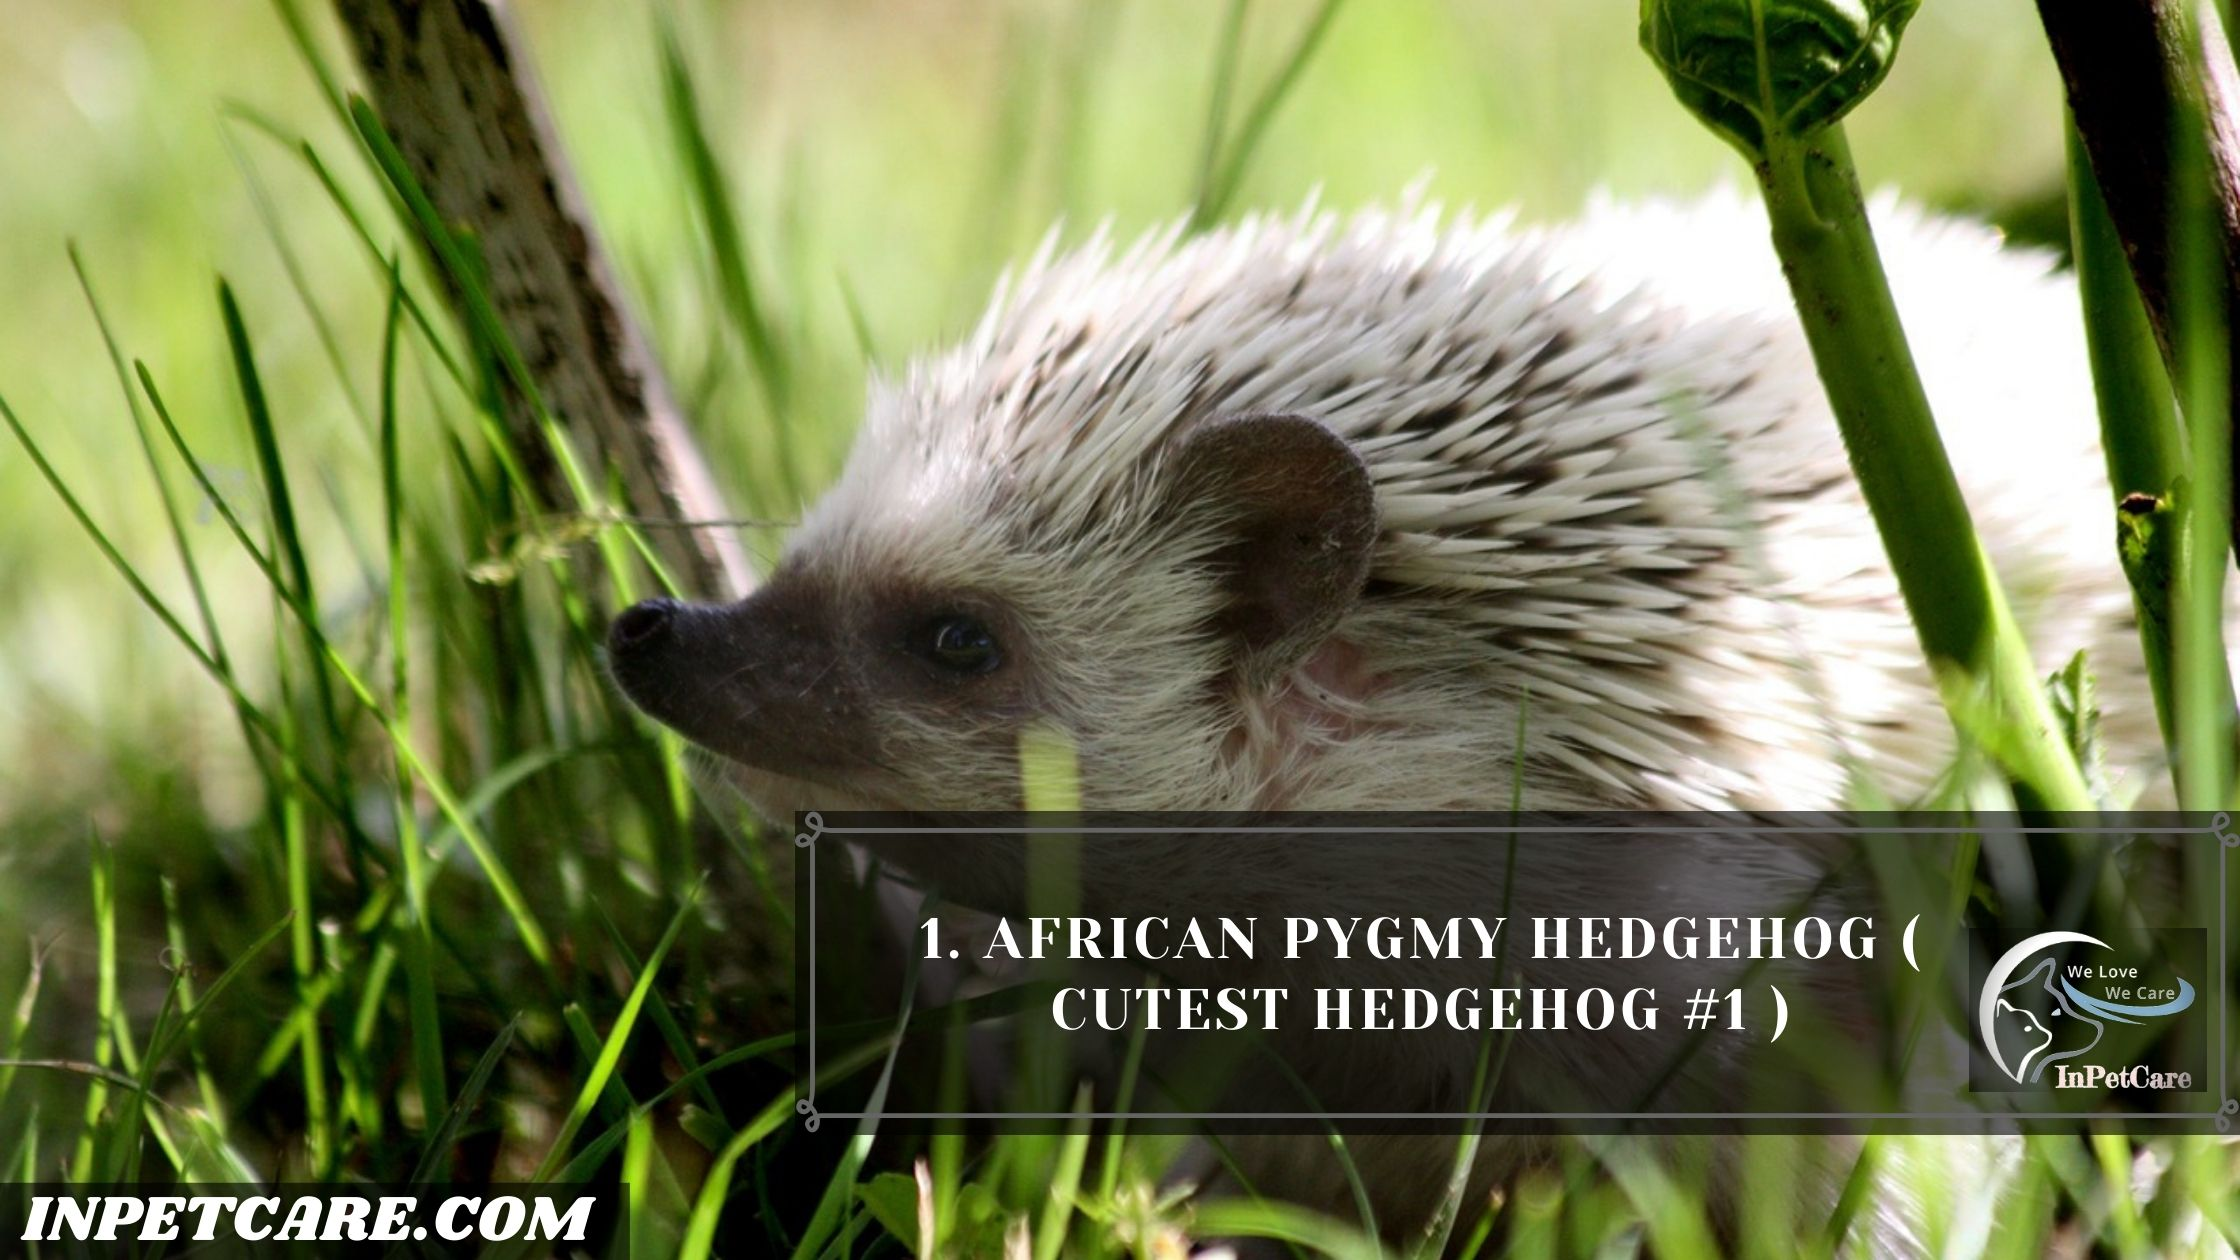 9 Cutest Hedgehogs Of The World To Pet (With Pictures)